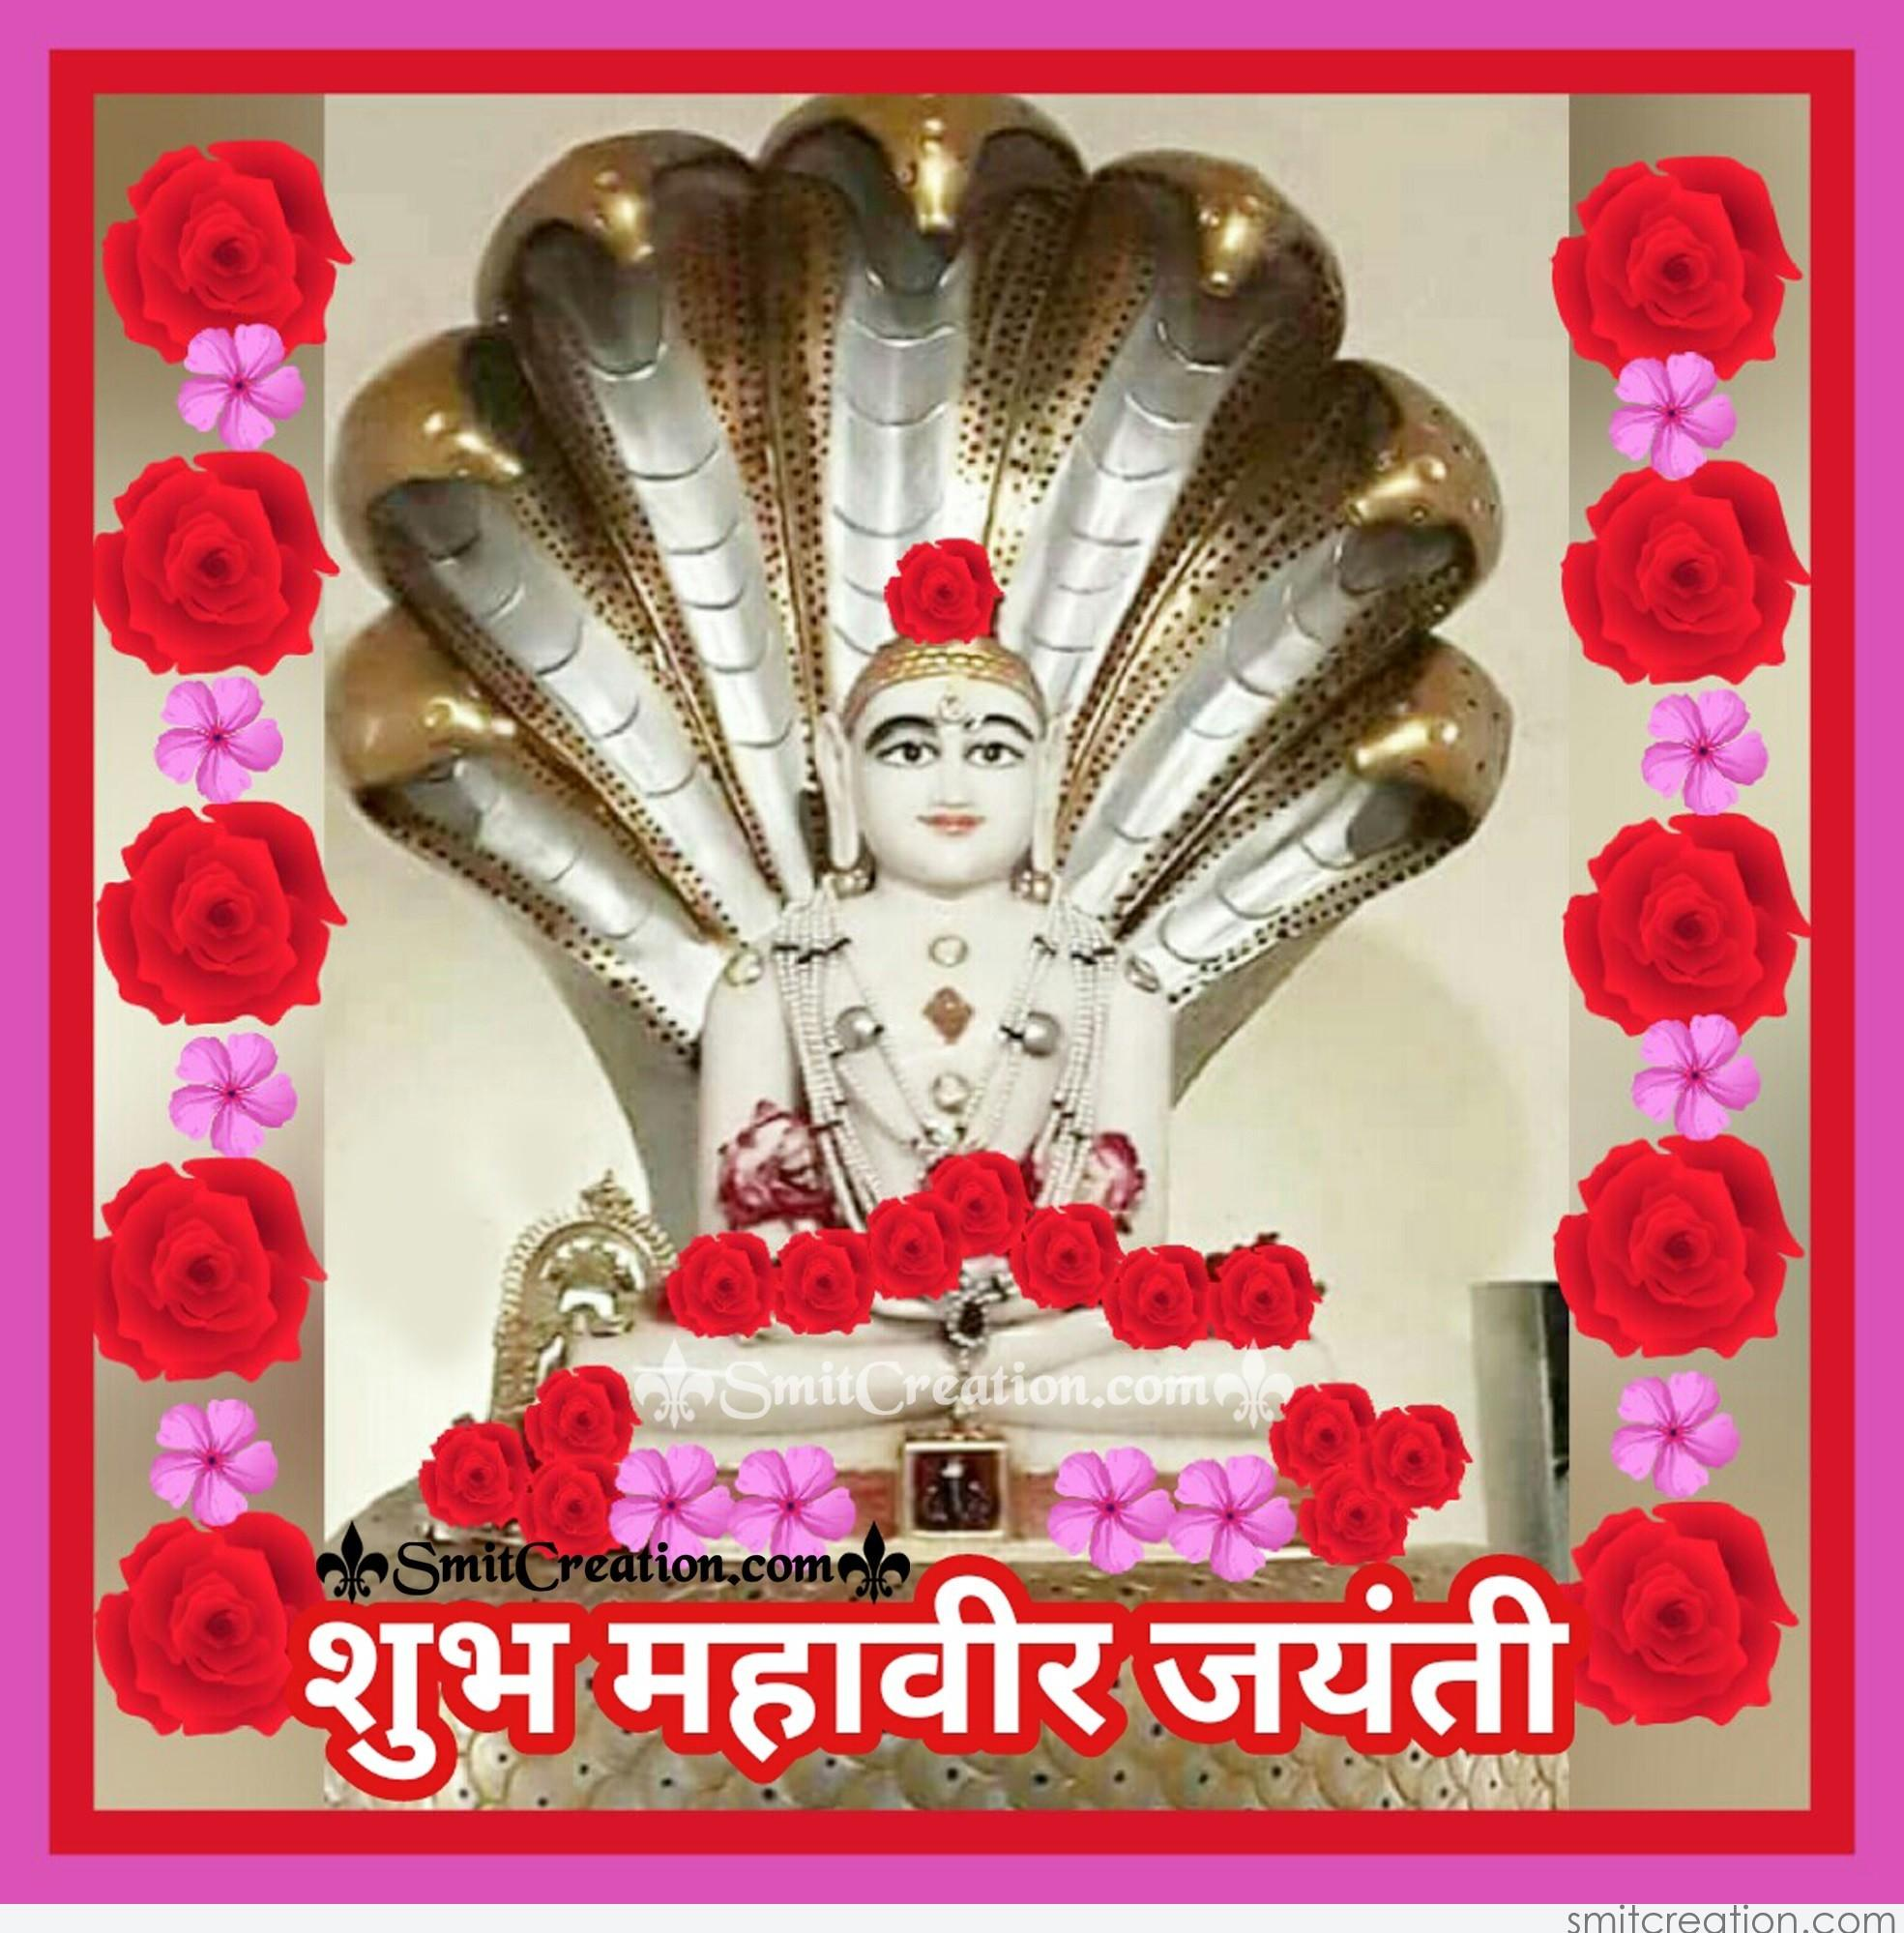 mahavir jayanti in hindi Find out the dates, history and background of the mahavir jayanti holiday celebration observed in india.